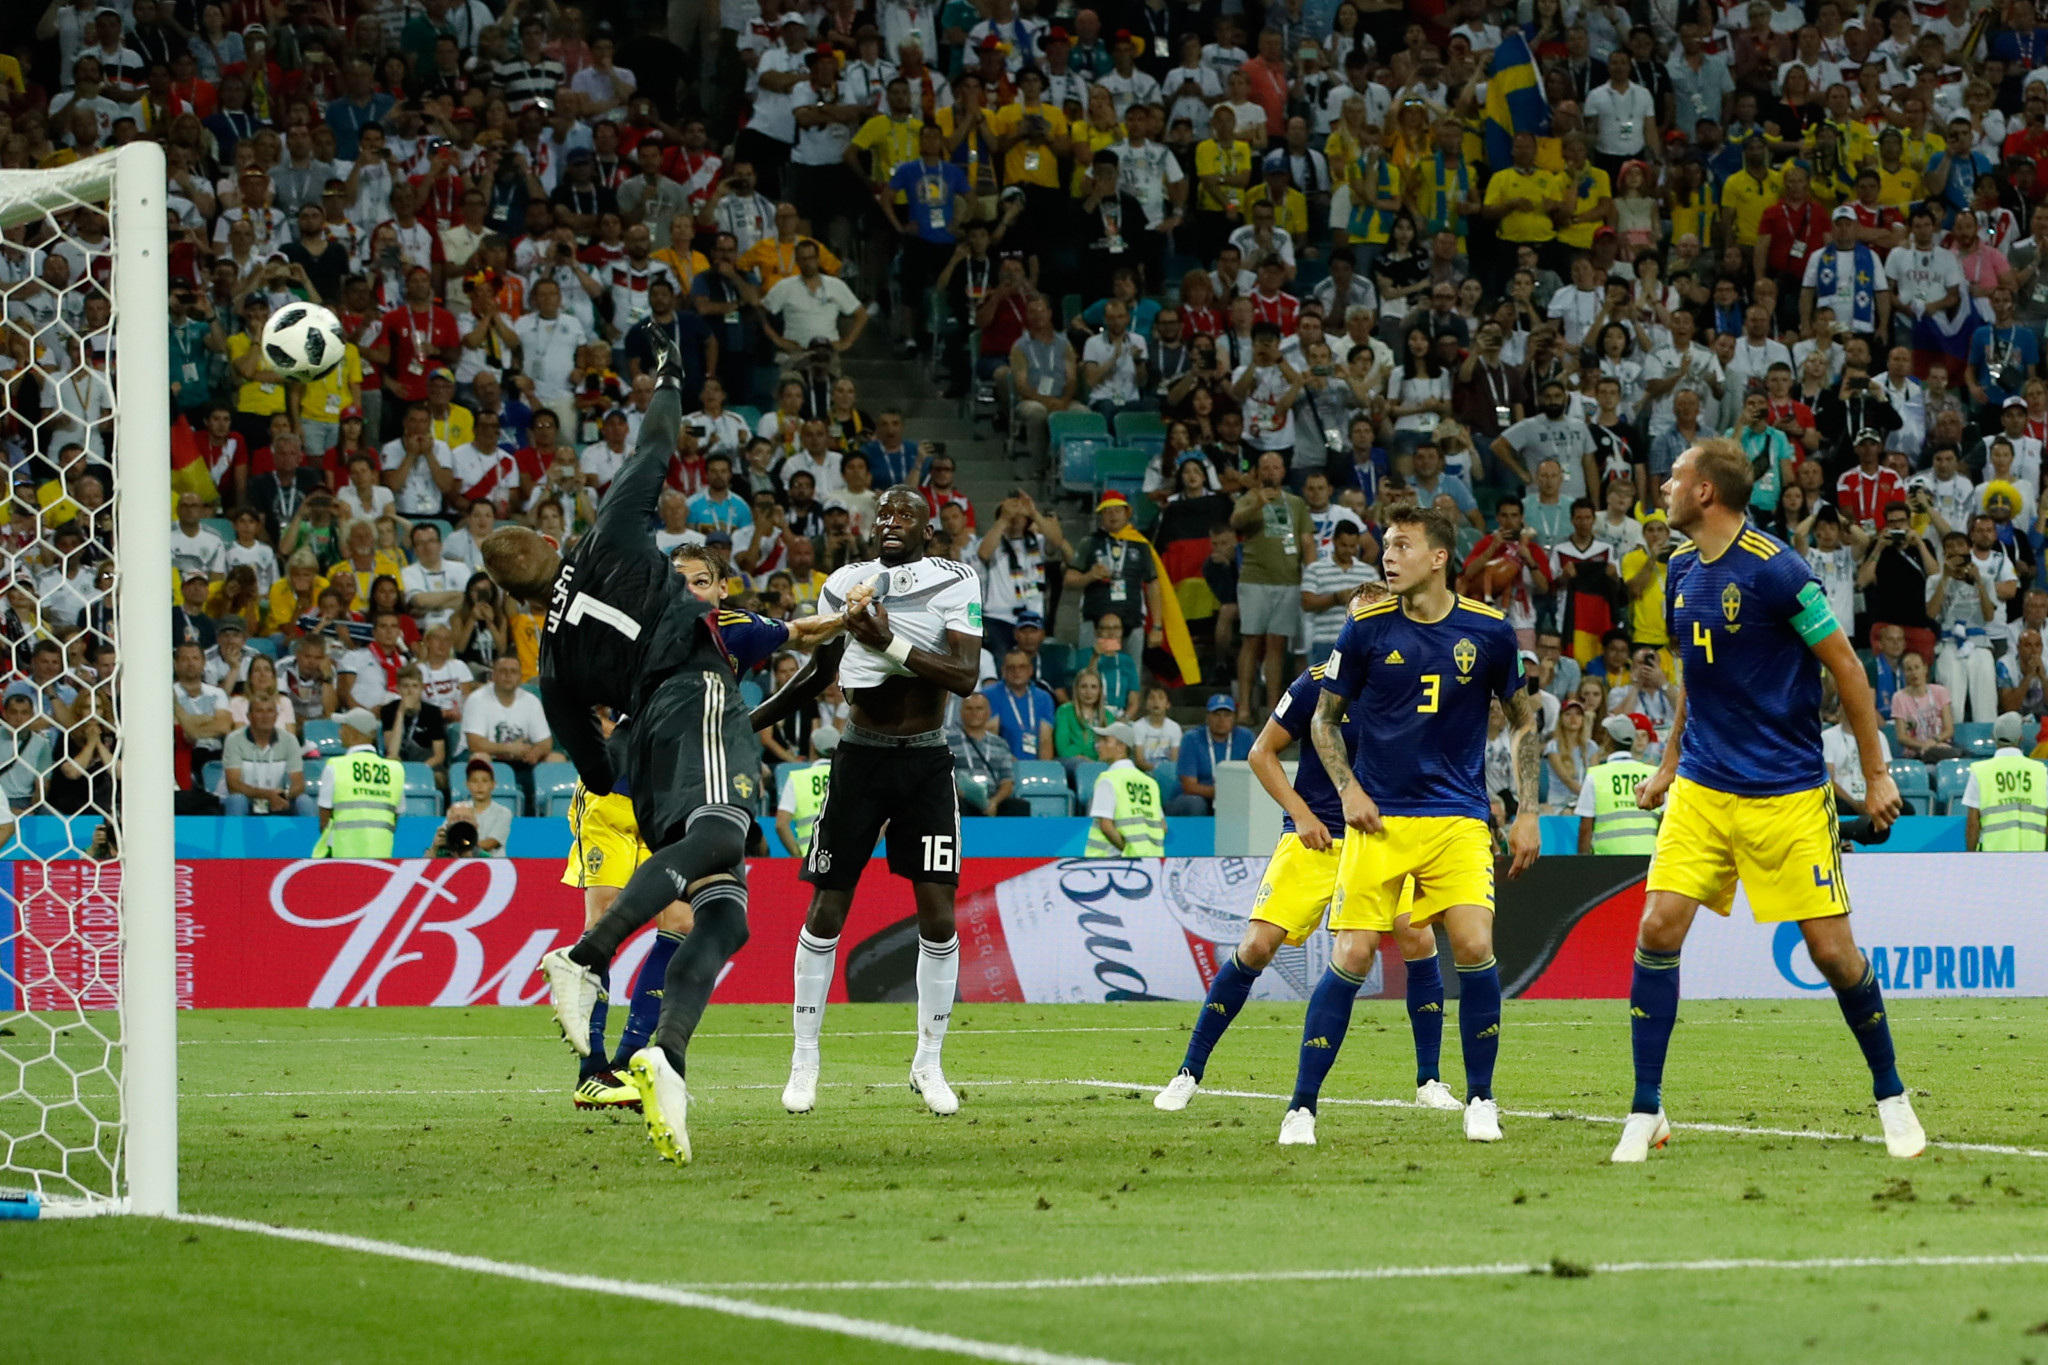 A late Toni Kroos free kick gave defending champions Germany a crucial win over Sweden ©Getty Images